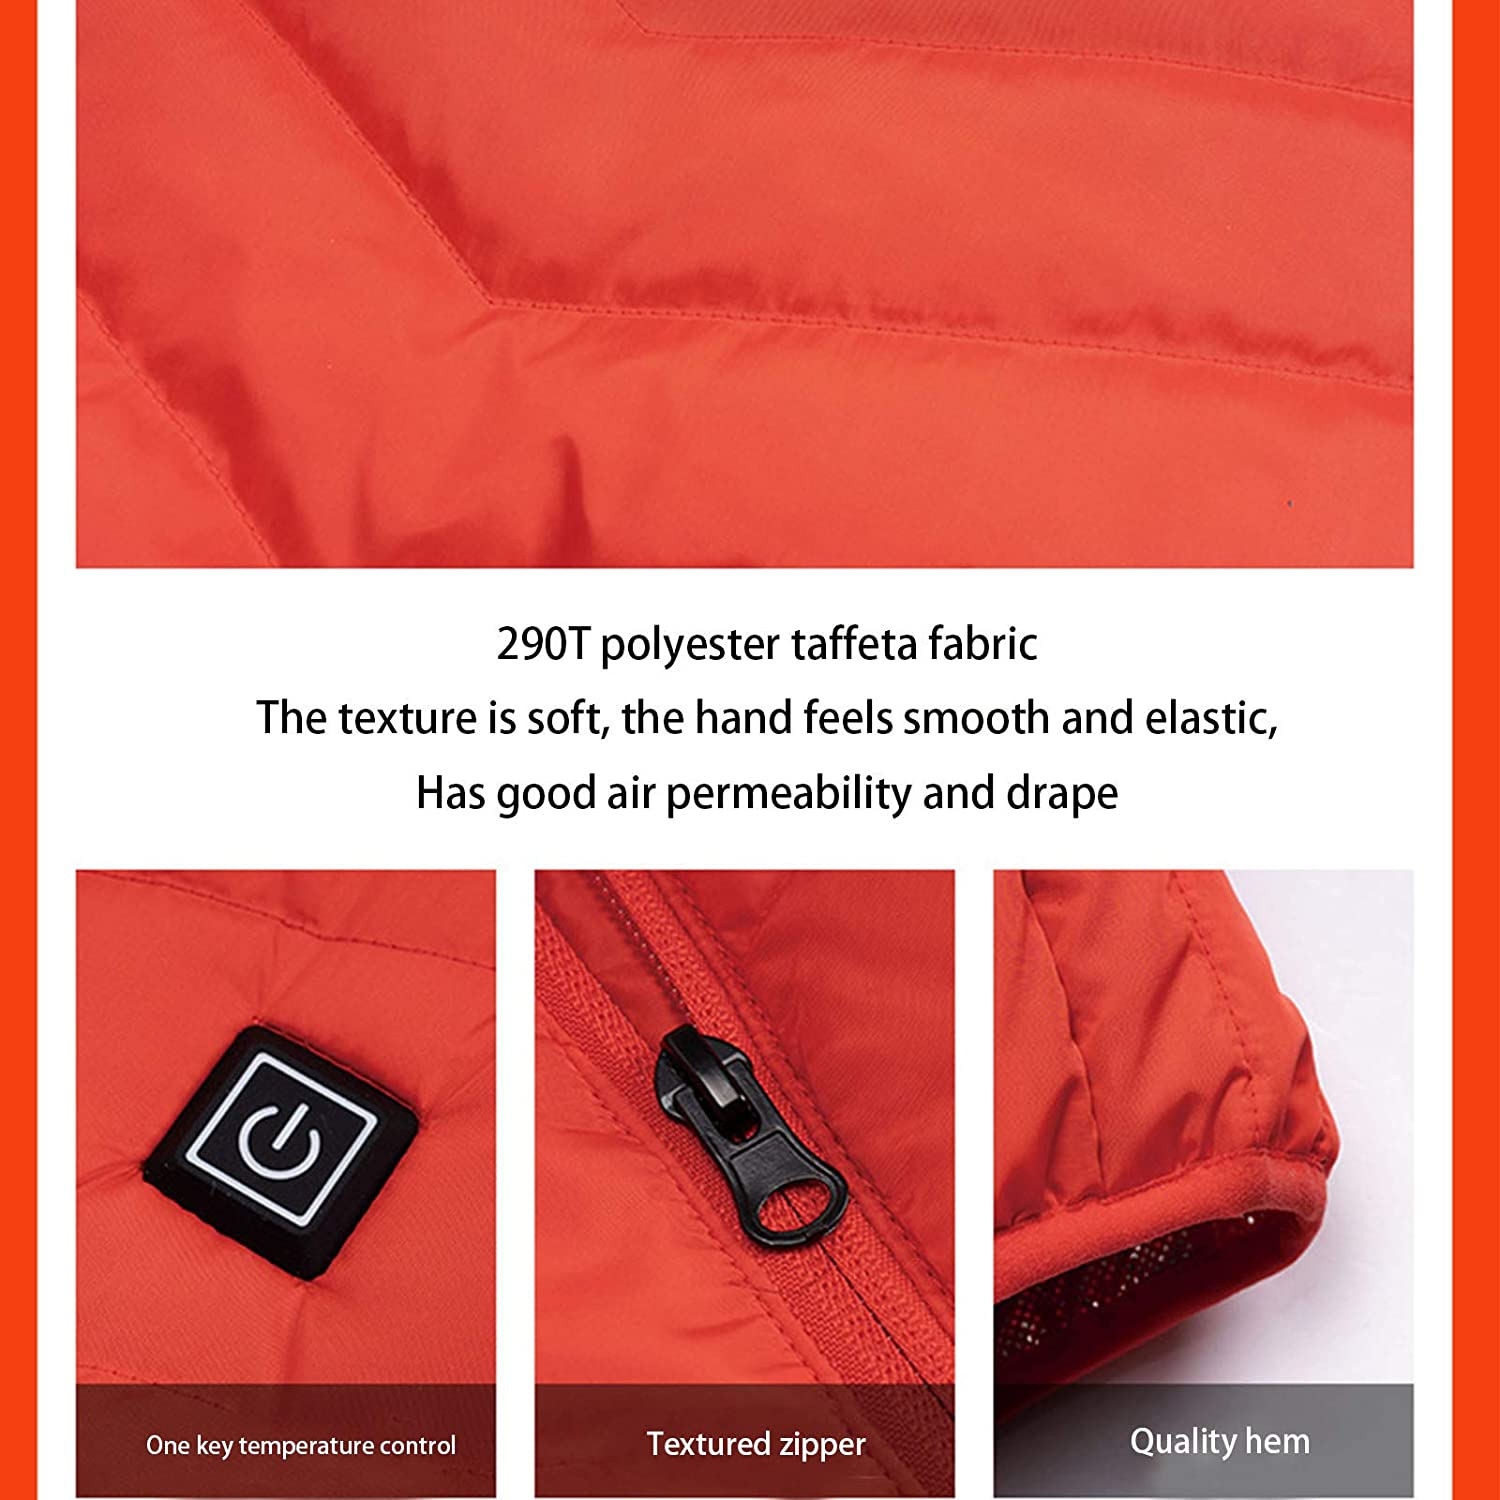 Hiking Keep The Whole Body Warm Suitable for Outdoor Activities Heated Vest Hunting,Red,S USB Charging Heating Vest Smart Warm Winter Cotton Jacket for Men and Women